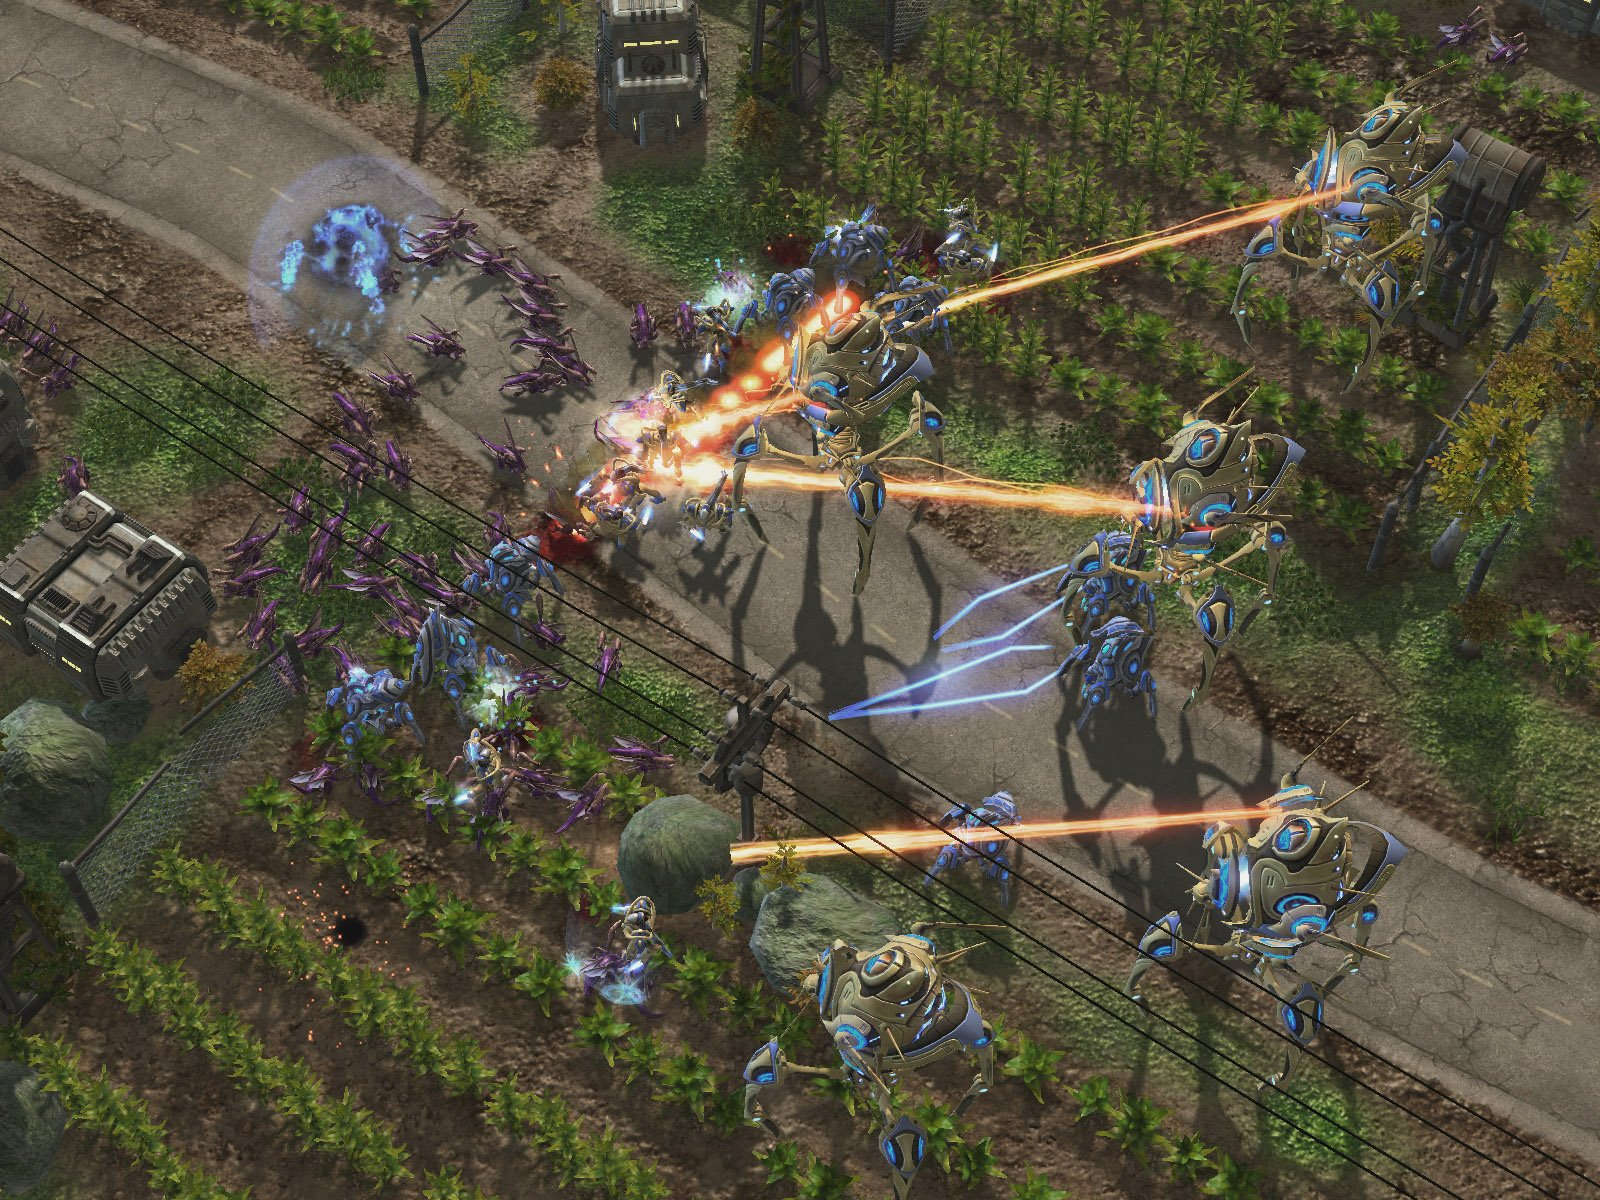 Starcraft II: Wings of Liberty Collector's Edition - PC by Blizzard Entertainment (Image #8)